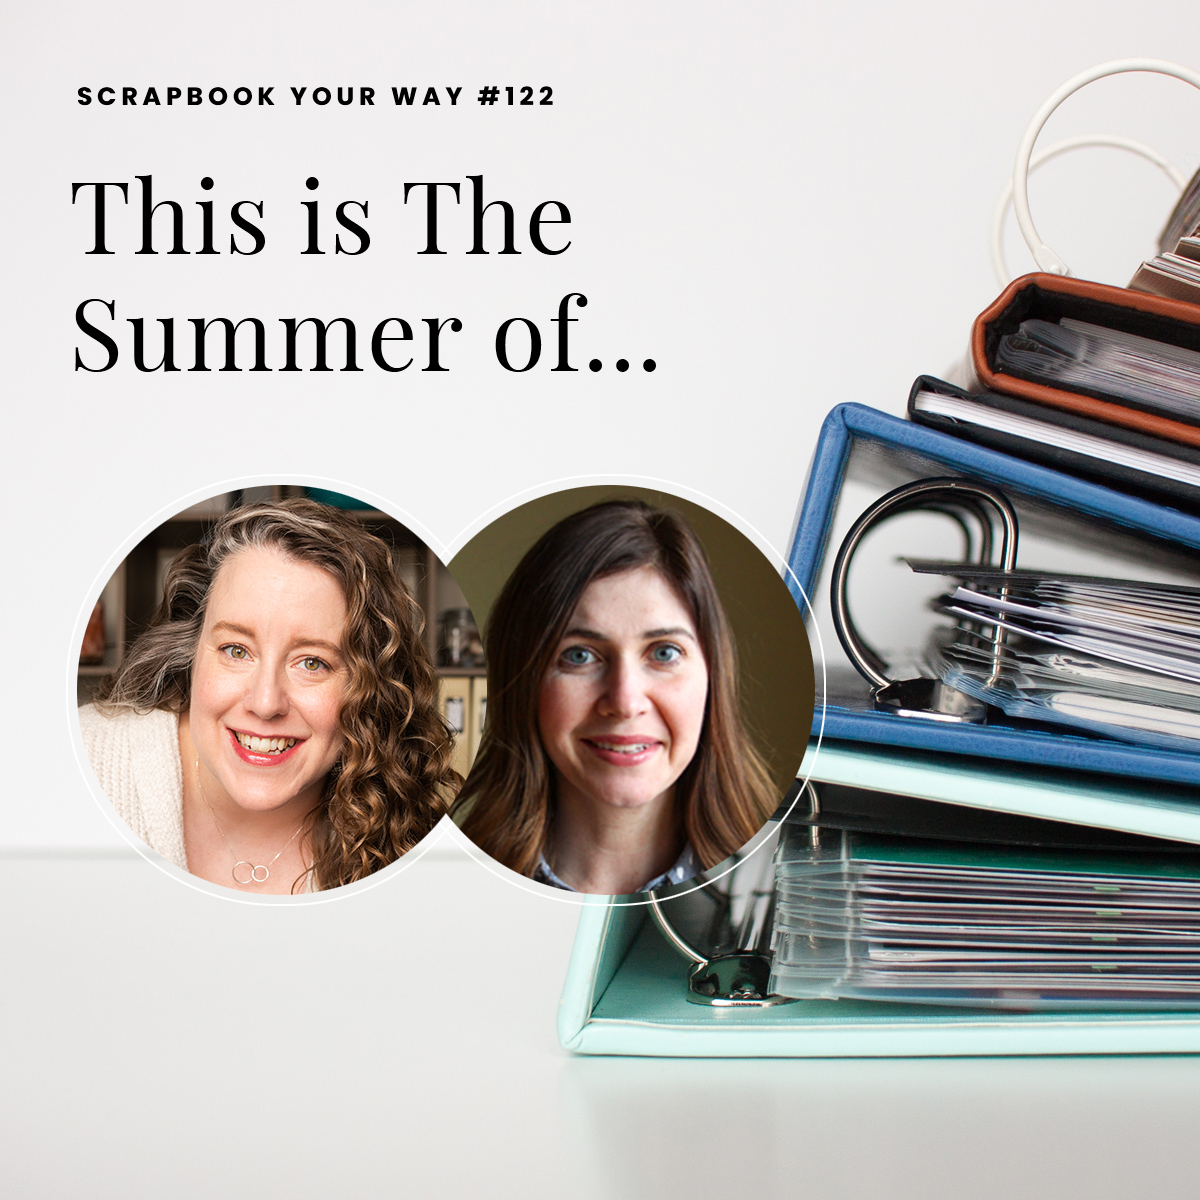 SYW122 - This is The Summer of...